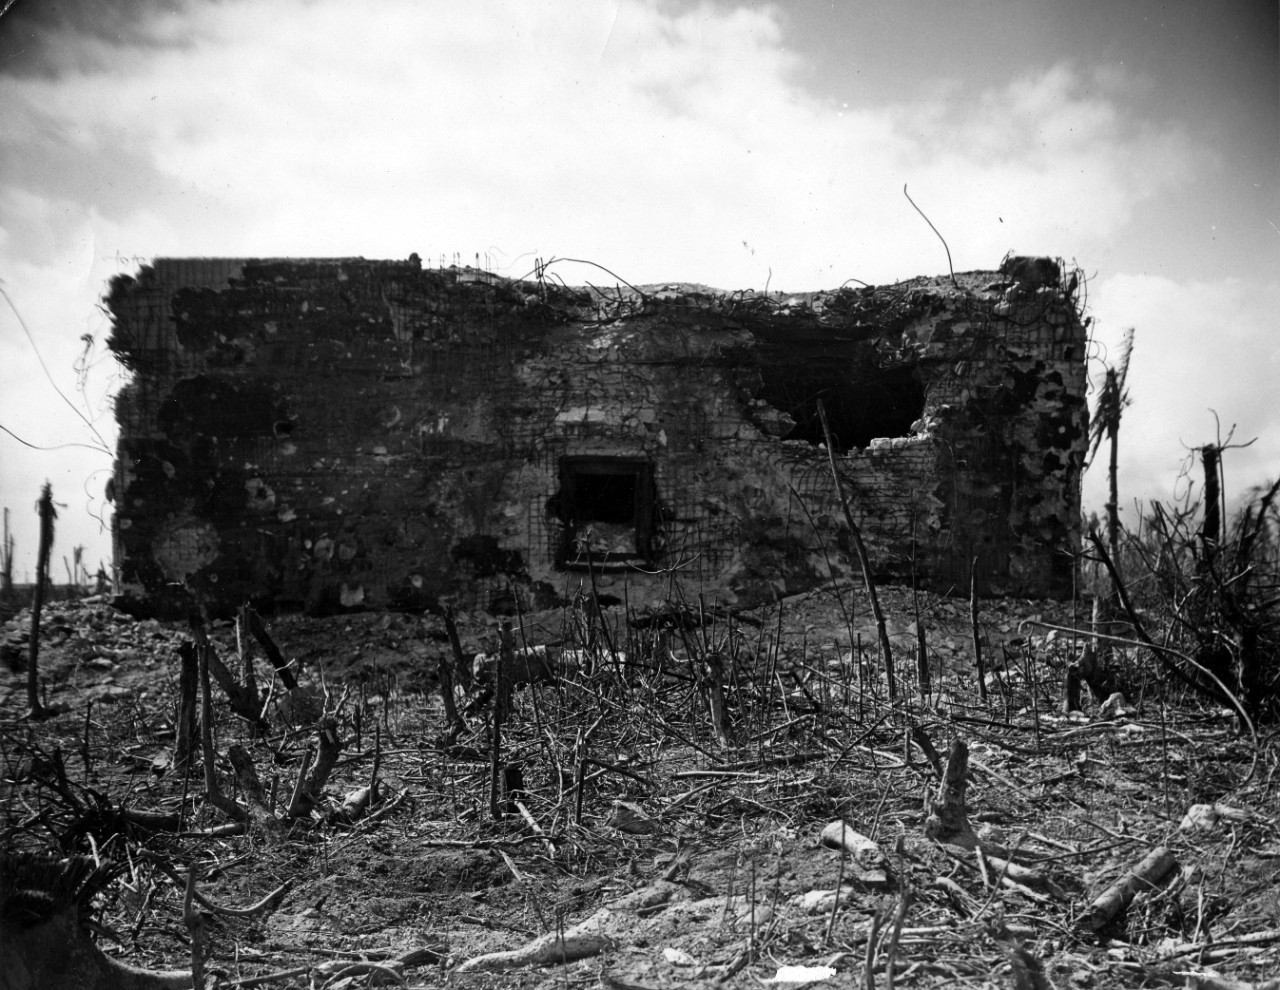 S-065 Roi-Namur Damage Photos Collection 63 images of naval bombardment damage photos on Roi-Namur Island, Kwajalein Atoll, Marshall Islands, 29 January 1944 – 2 February 1944, following Allied invasion. Photos were transferred from Operational Archives, with no indication as to their original source.